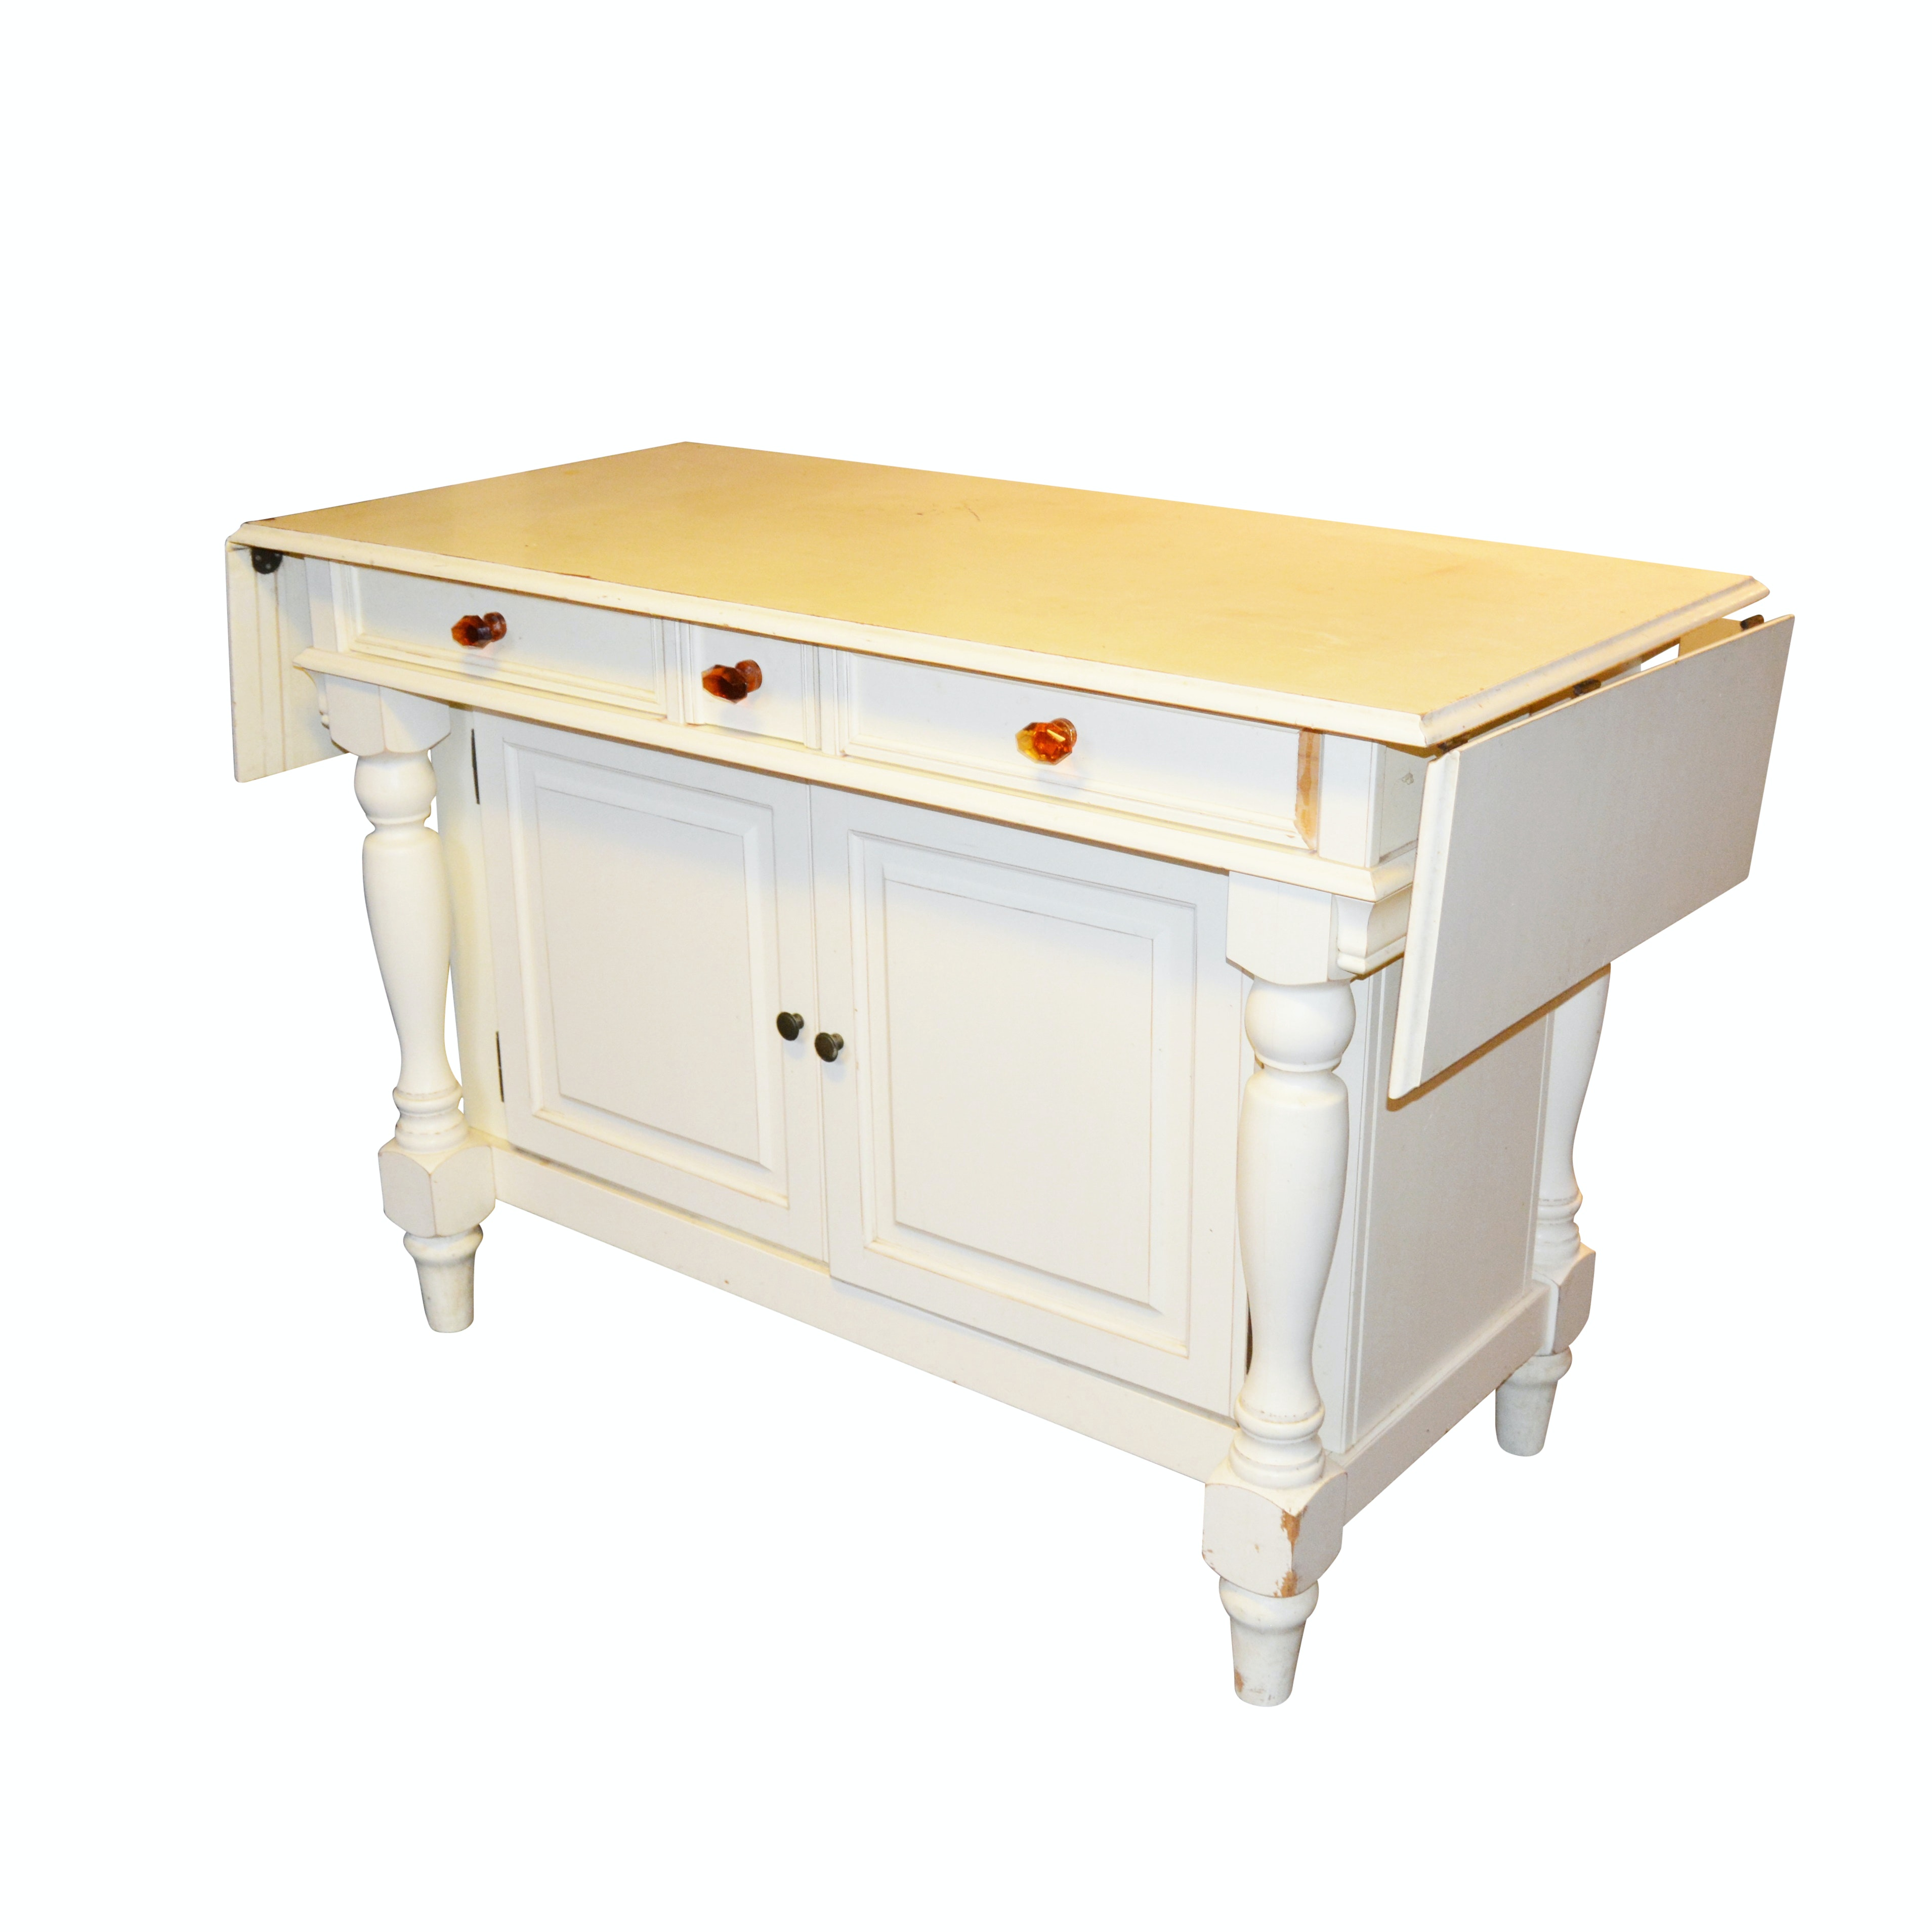 French Provincial Style White Kitchen Island by Frontgate